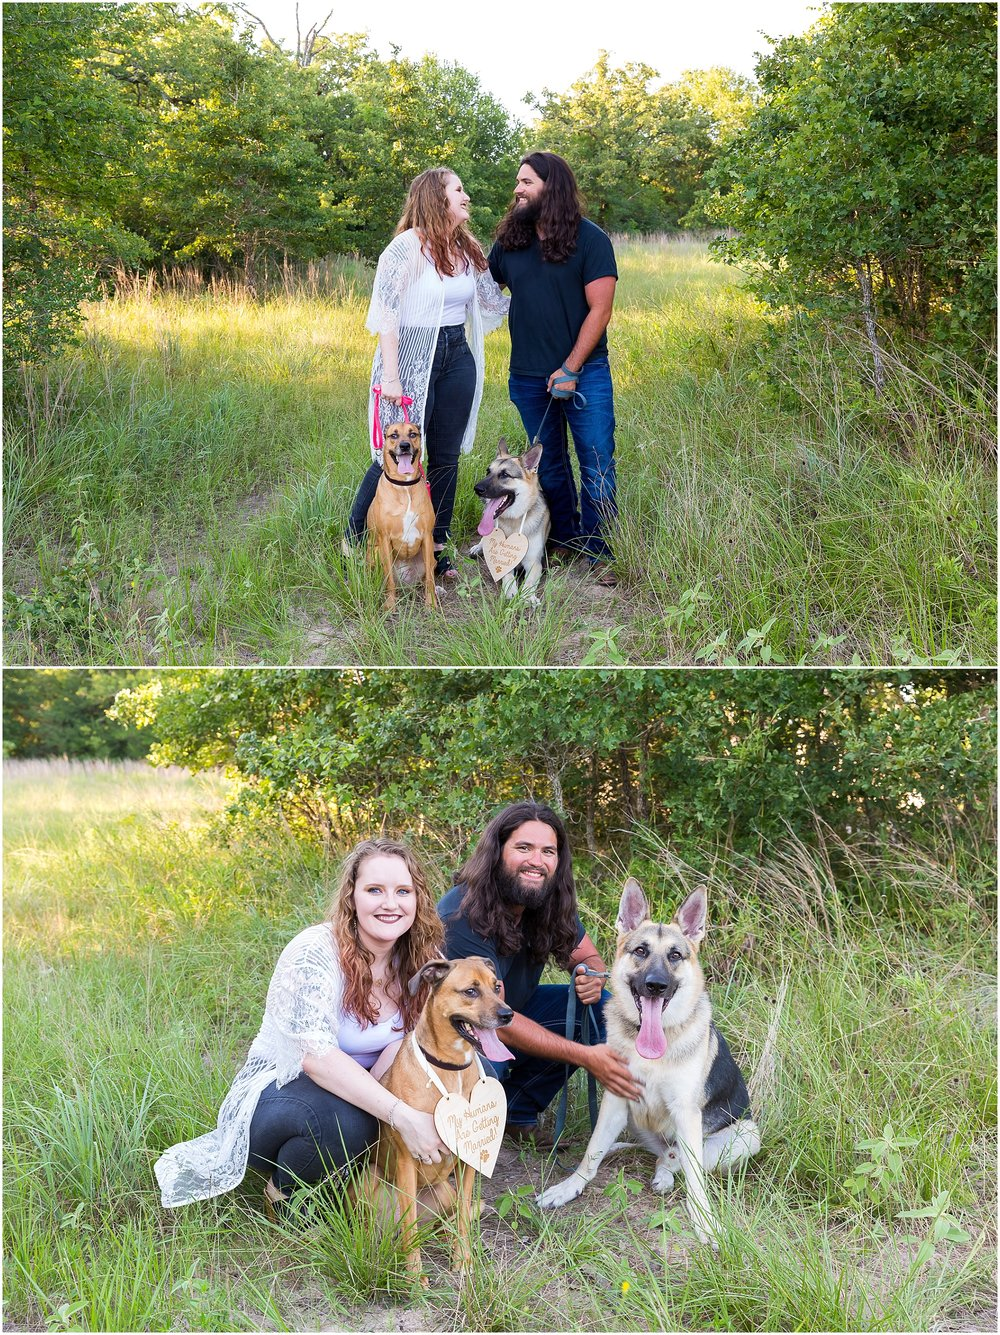 An engagement session with dogs in College Station, Texas - Jason & Melaina Photography - www.jasonandmelaina.com